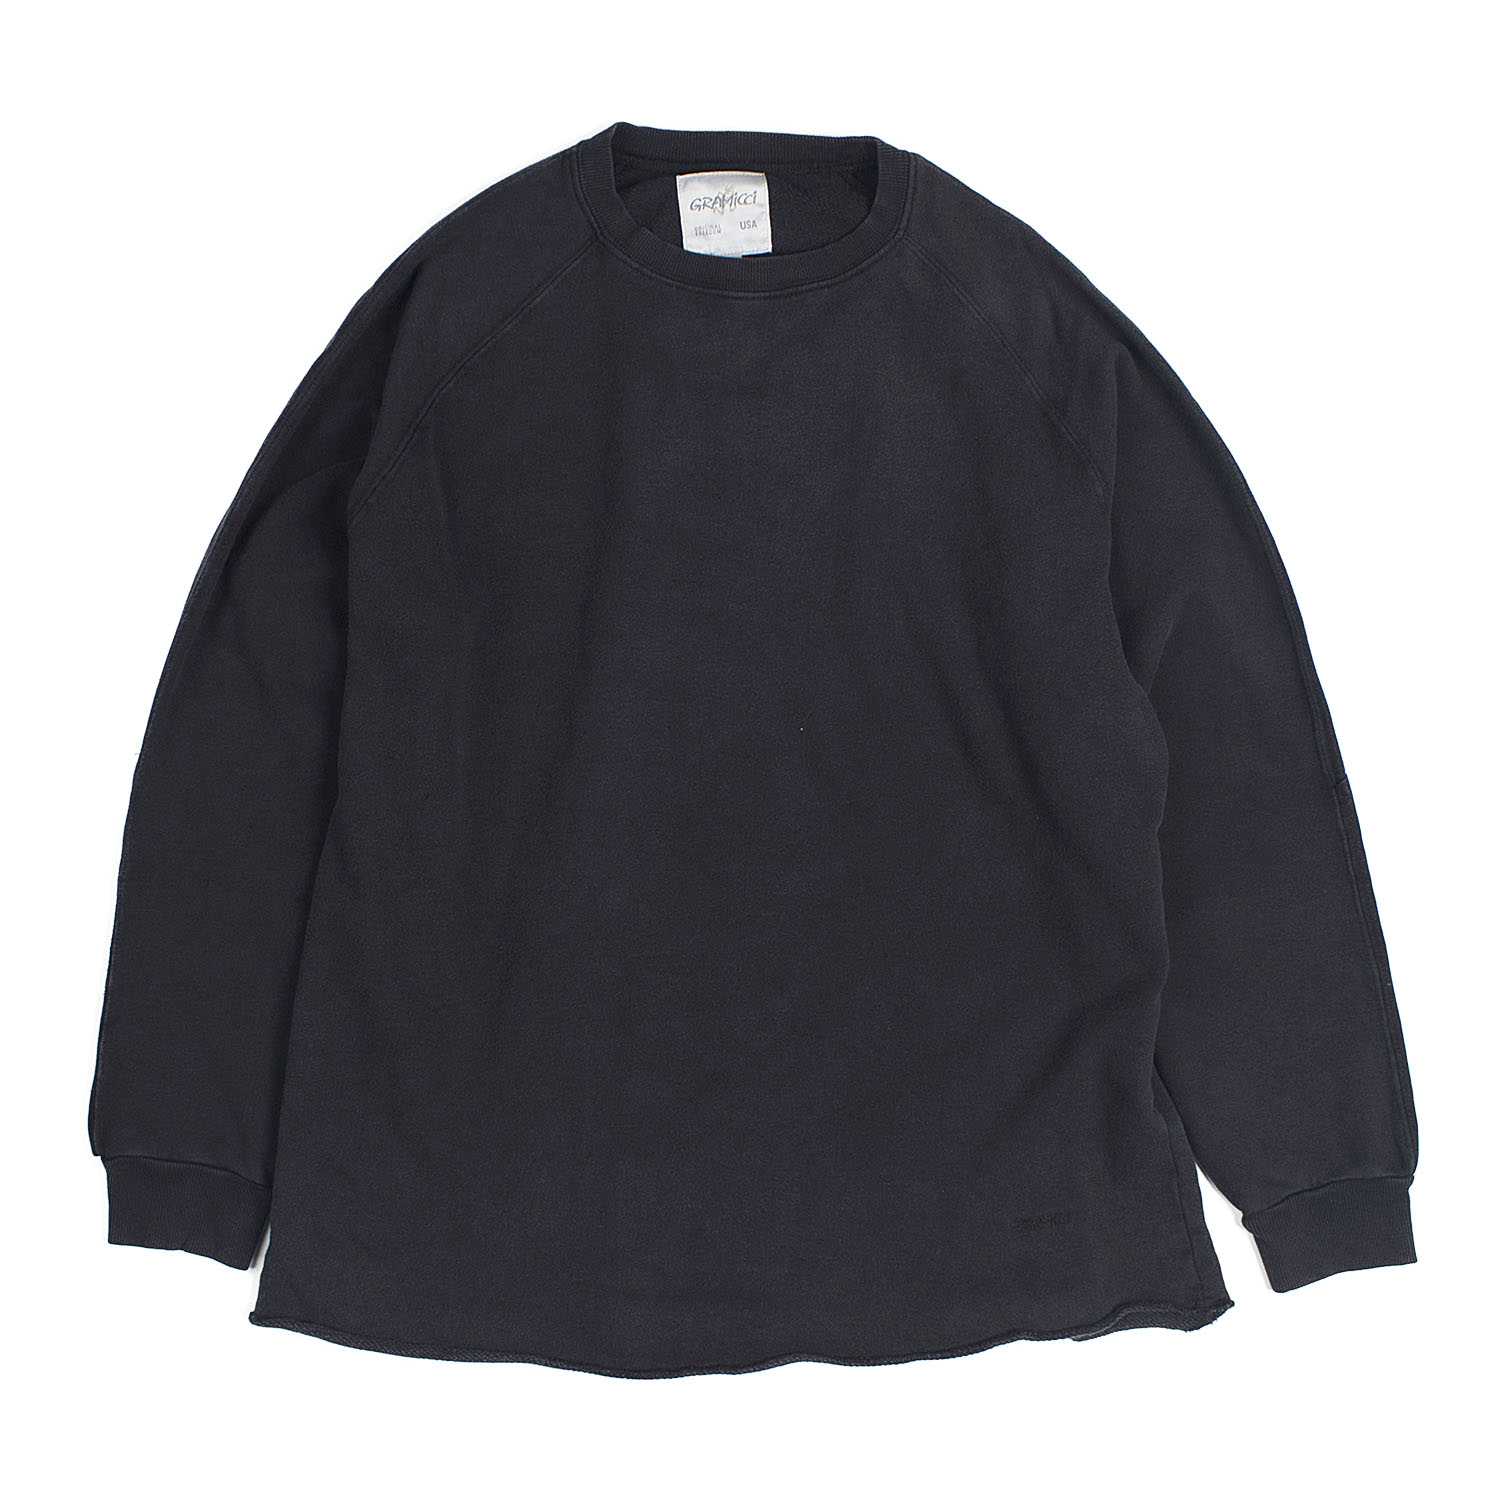 Talecut Sweat (Black)